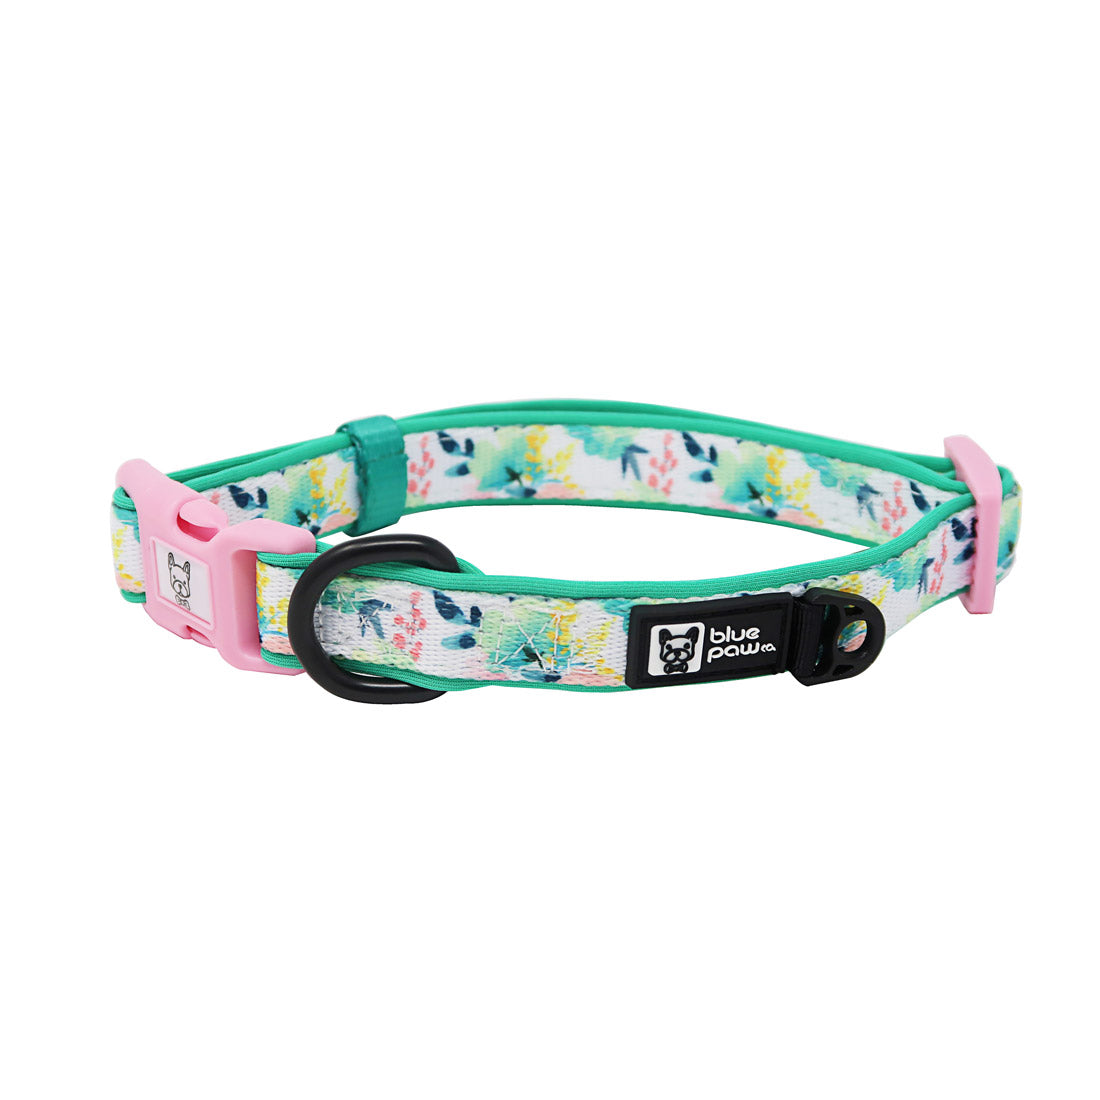 Dog Collar - Sweet & Simple - Blue Paw Co.